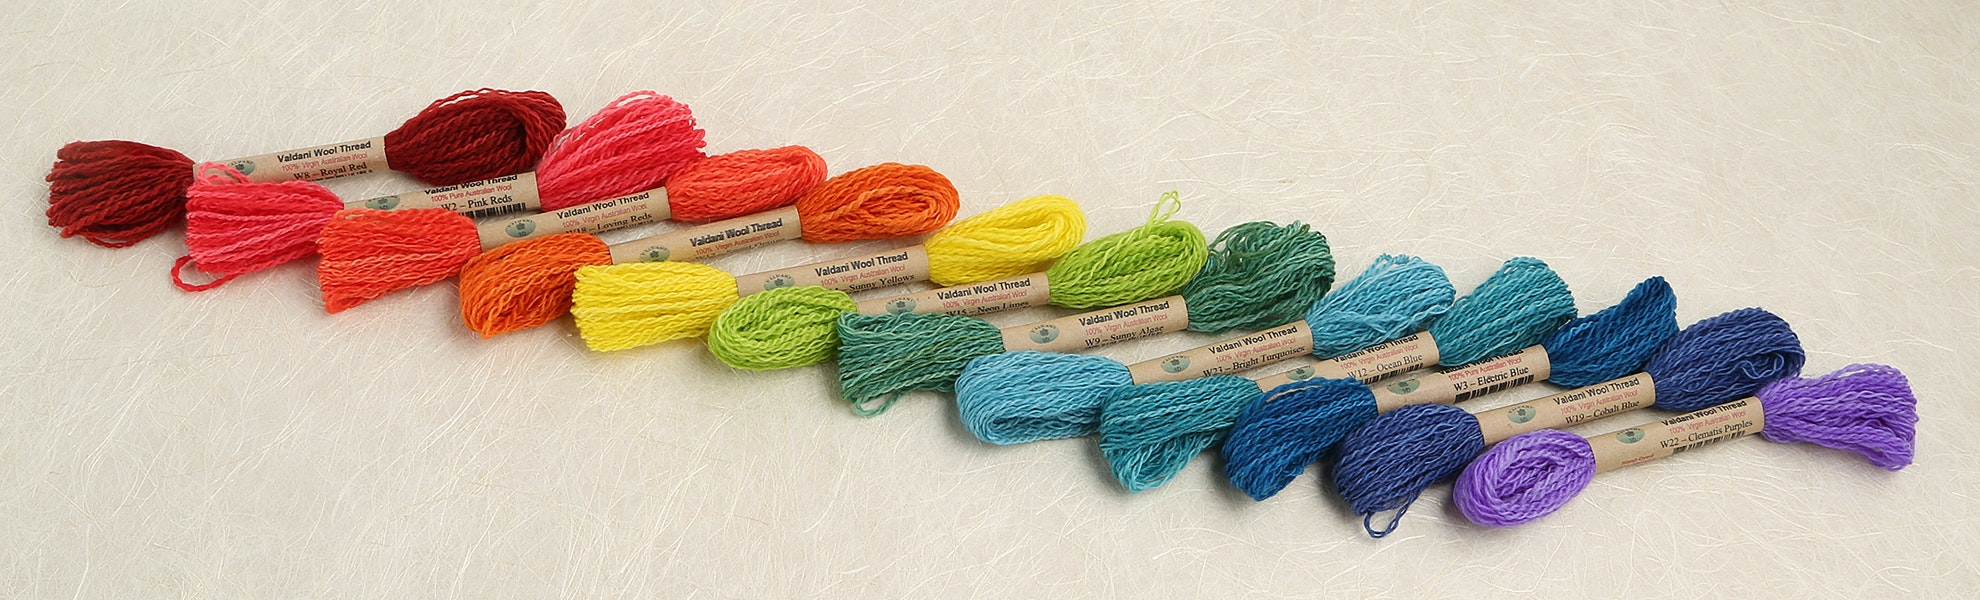 Valdani Wool Thread Collection